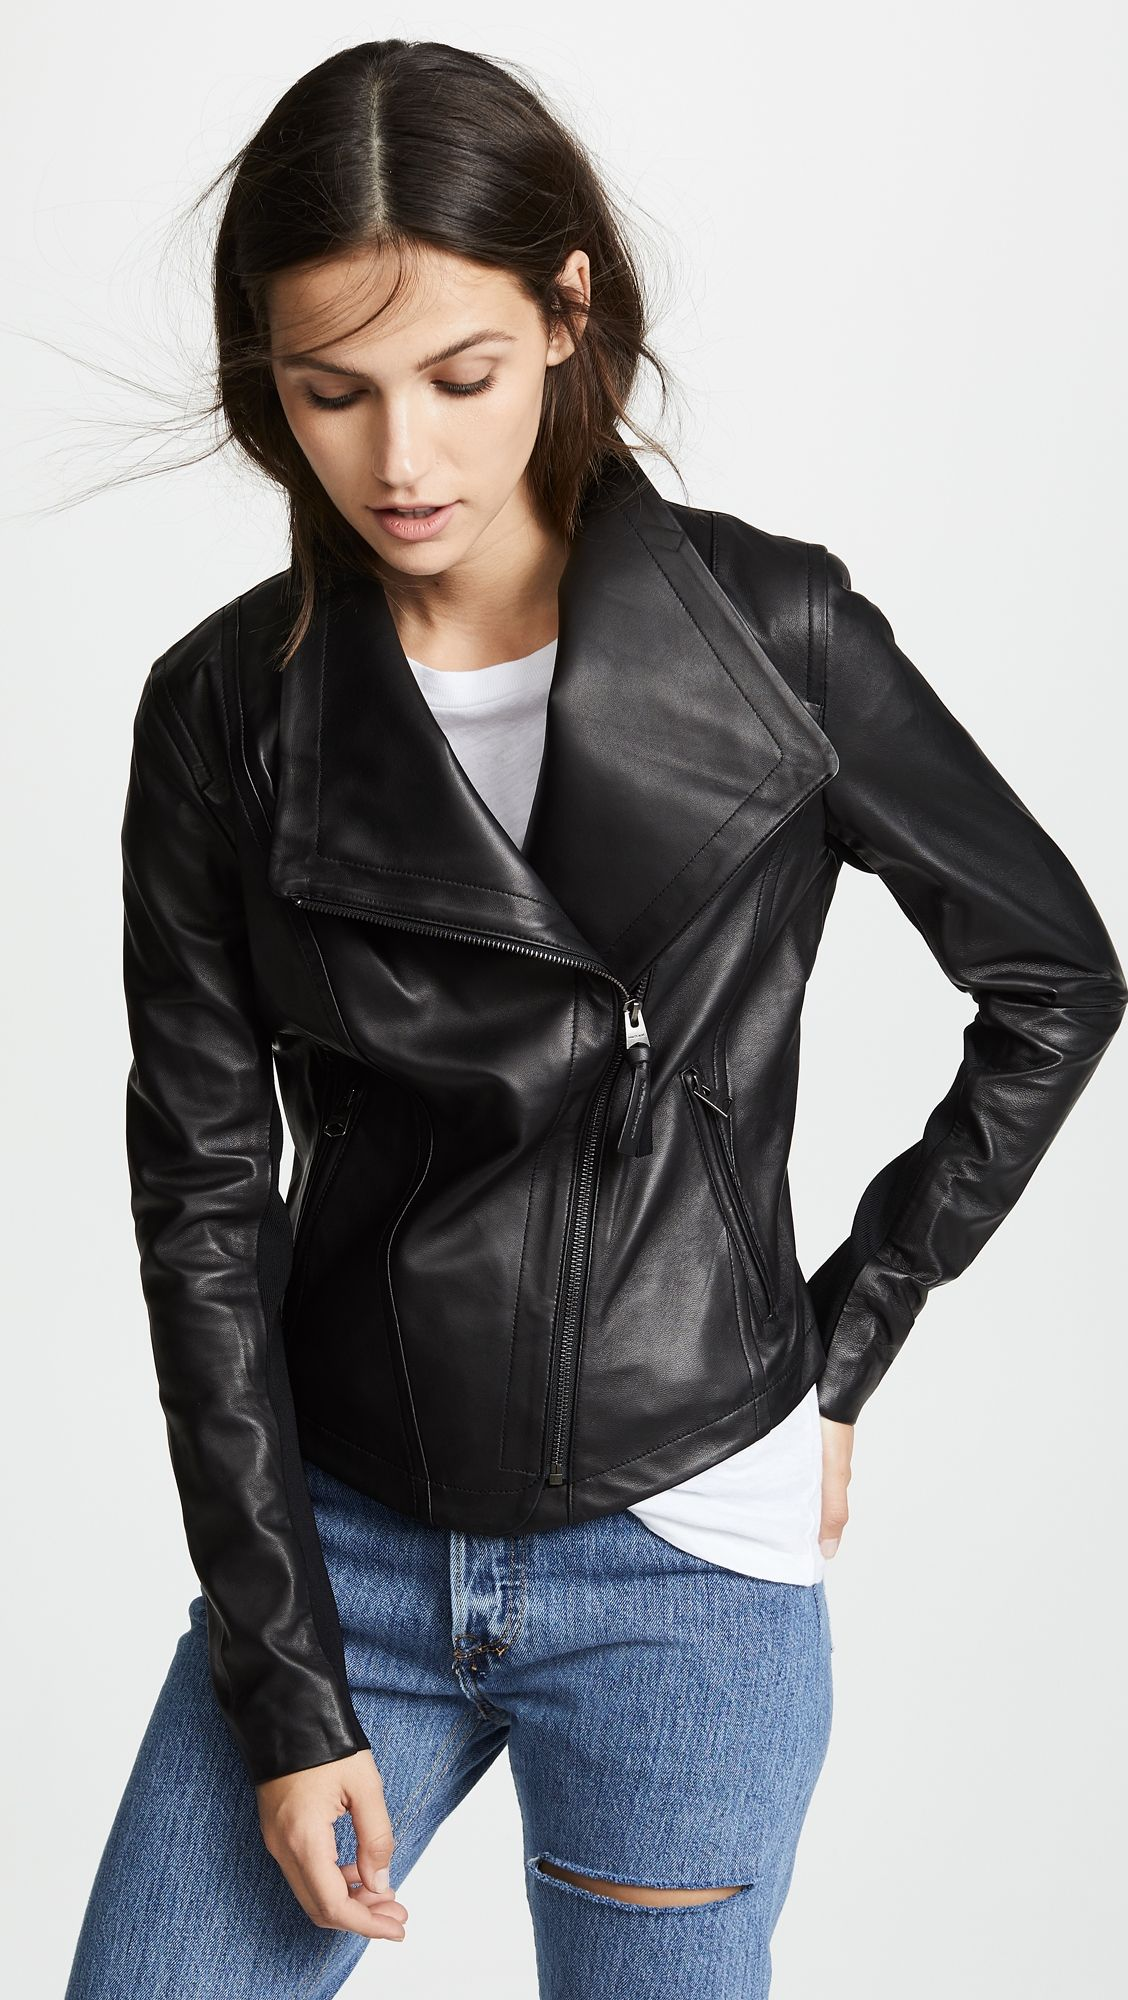 Mackage Pina Leather Jacket Leather jacket, Mackage